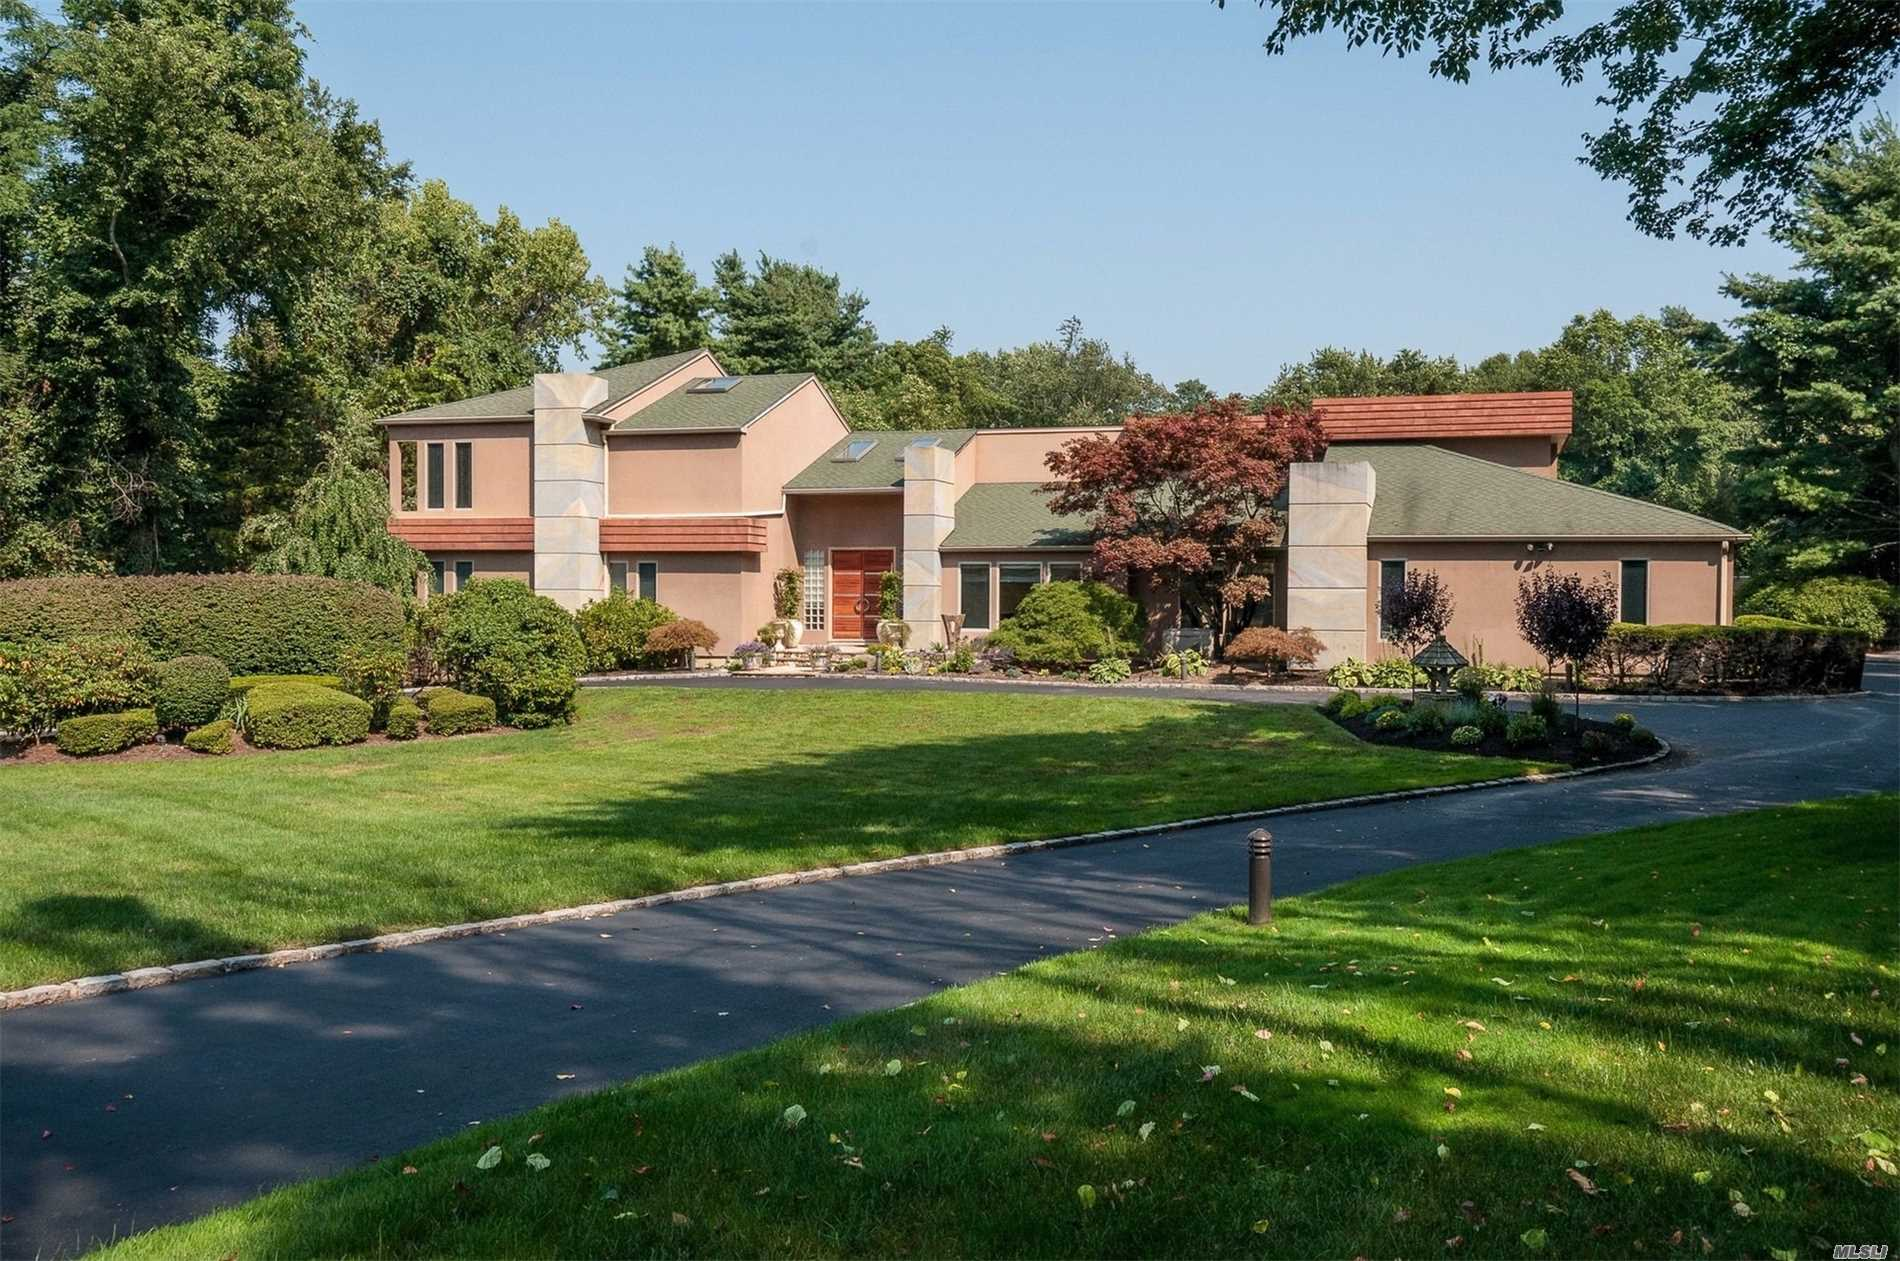 One Of A Kind Approximate 7000 Sq.Ft. Bsmt 2849 Sq.Ft. 2 Acre Property, Putting Green, Lit Beach Volleyball, 5000 Square Foot Lit Sport Court, Full Cabana With Bath, Back Up House Generator, 2000 Square Foot Ironwood Deck, Half Court All Weather Basketball Court. Radiant Heat In Kitchen And Baths, Indoor/Outdoor Sound System, New Spectacular Home Theater. See Attached List Of Home Features.